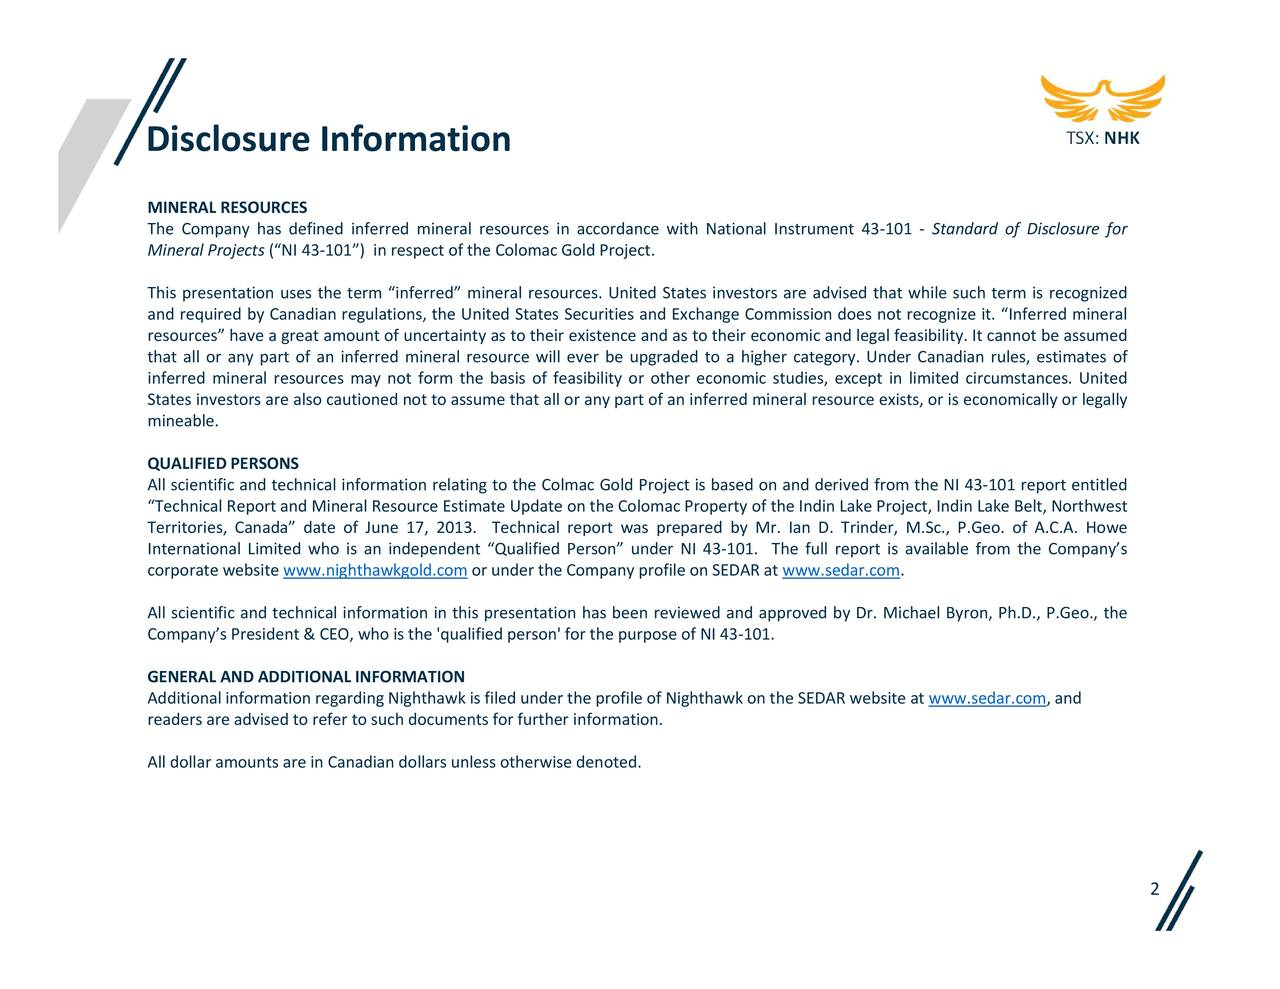 Nighthawk gold mimzf presents at vancouver resource investment and standard of disclosure for sedar www sciox Gallery